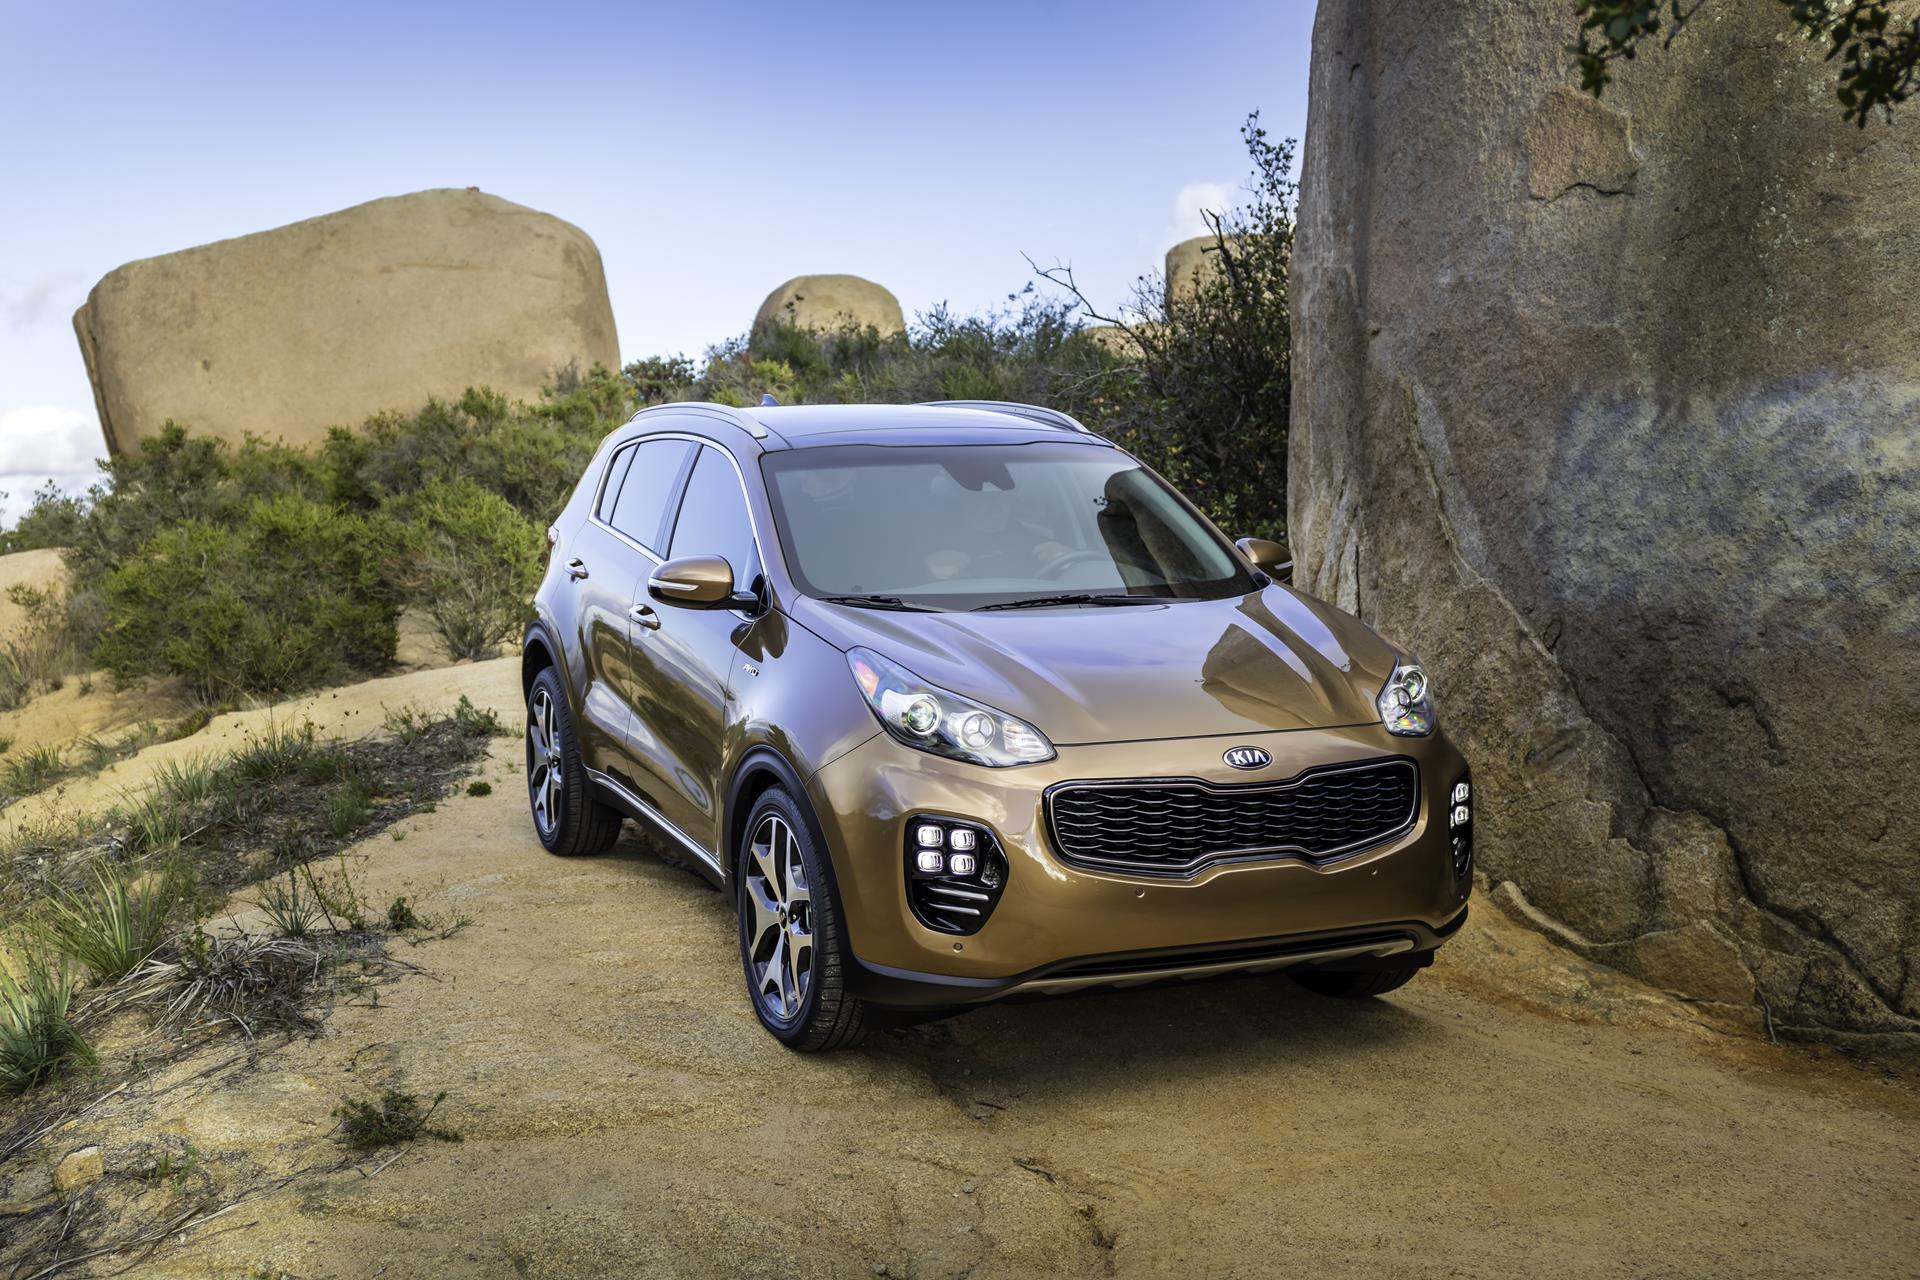 2017 Kia Sportage SUV_Image 01 2017 kia sportage technical specifications and data engine 2017 Kia Sportage Oil Change at panicattacktreatment.co